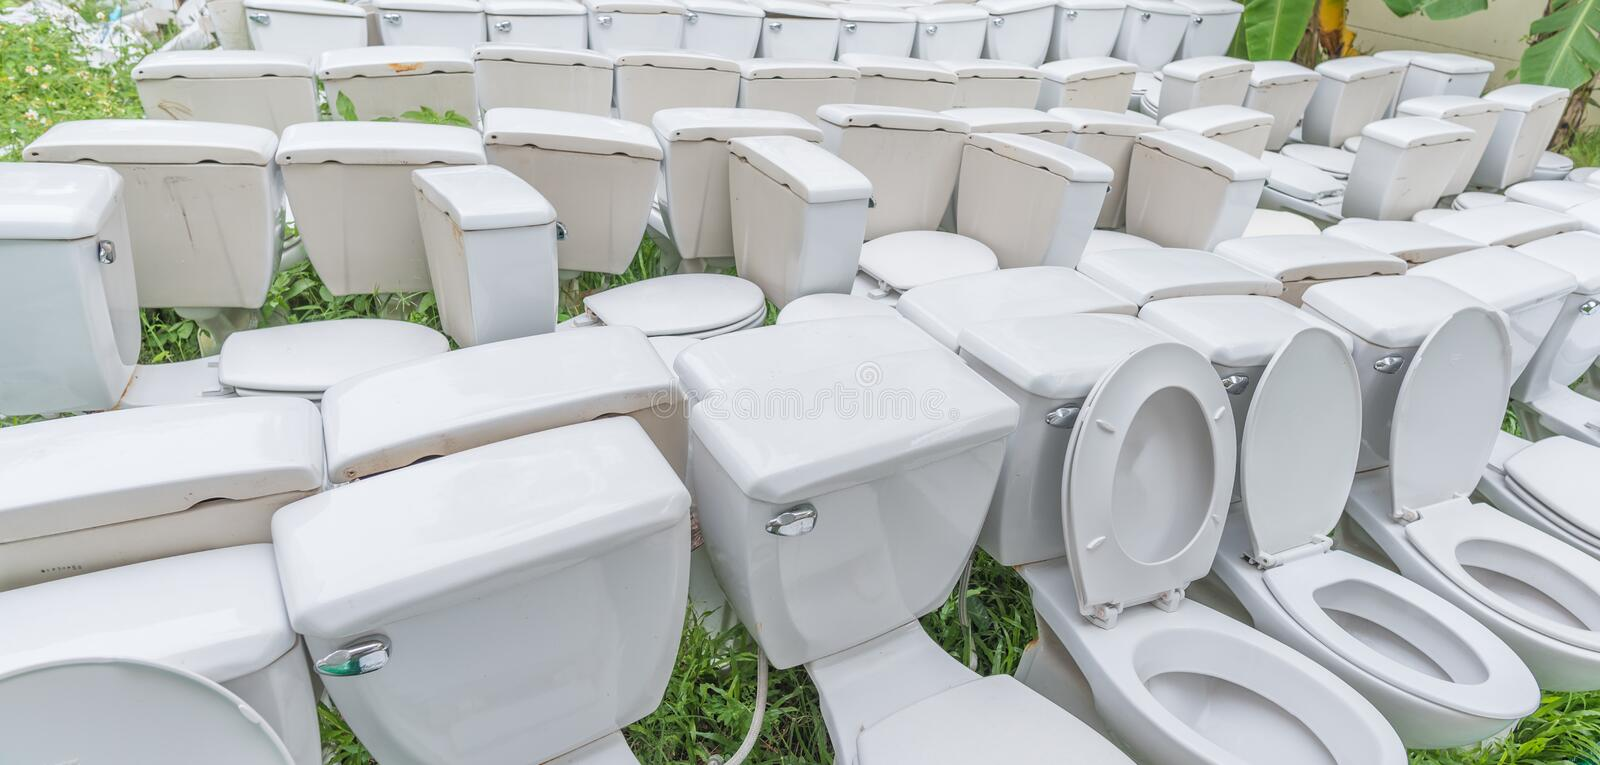 waste flush toilet outdoor . royalty free stock photography